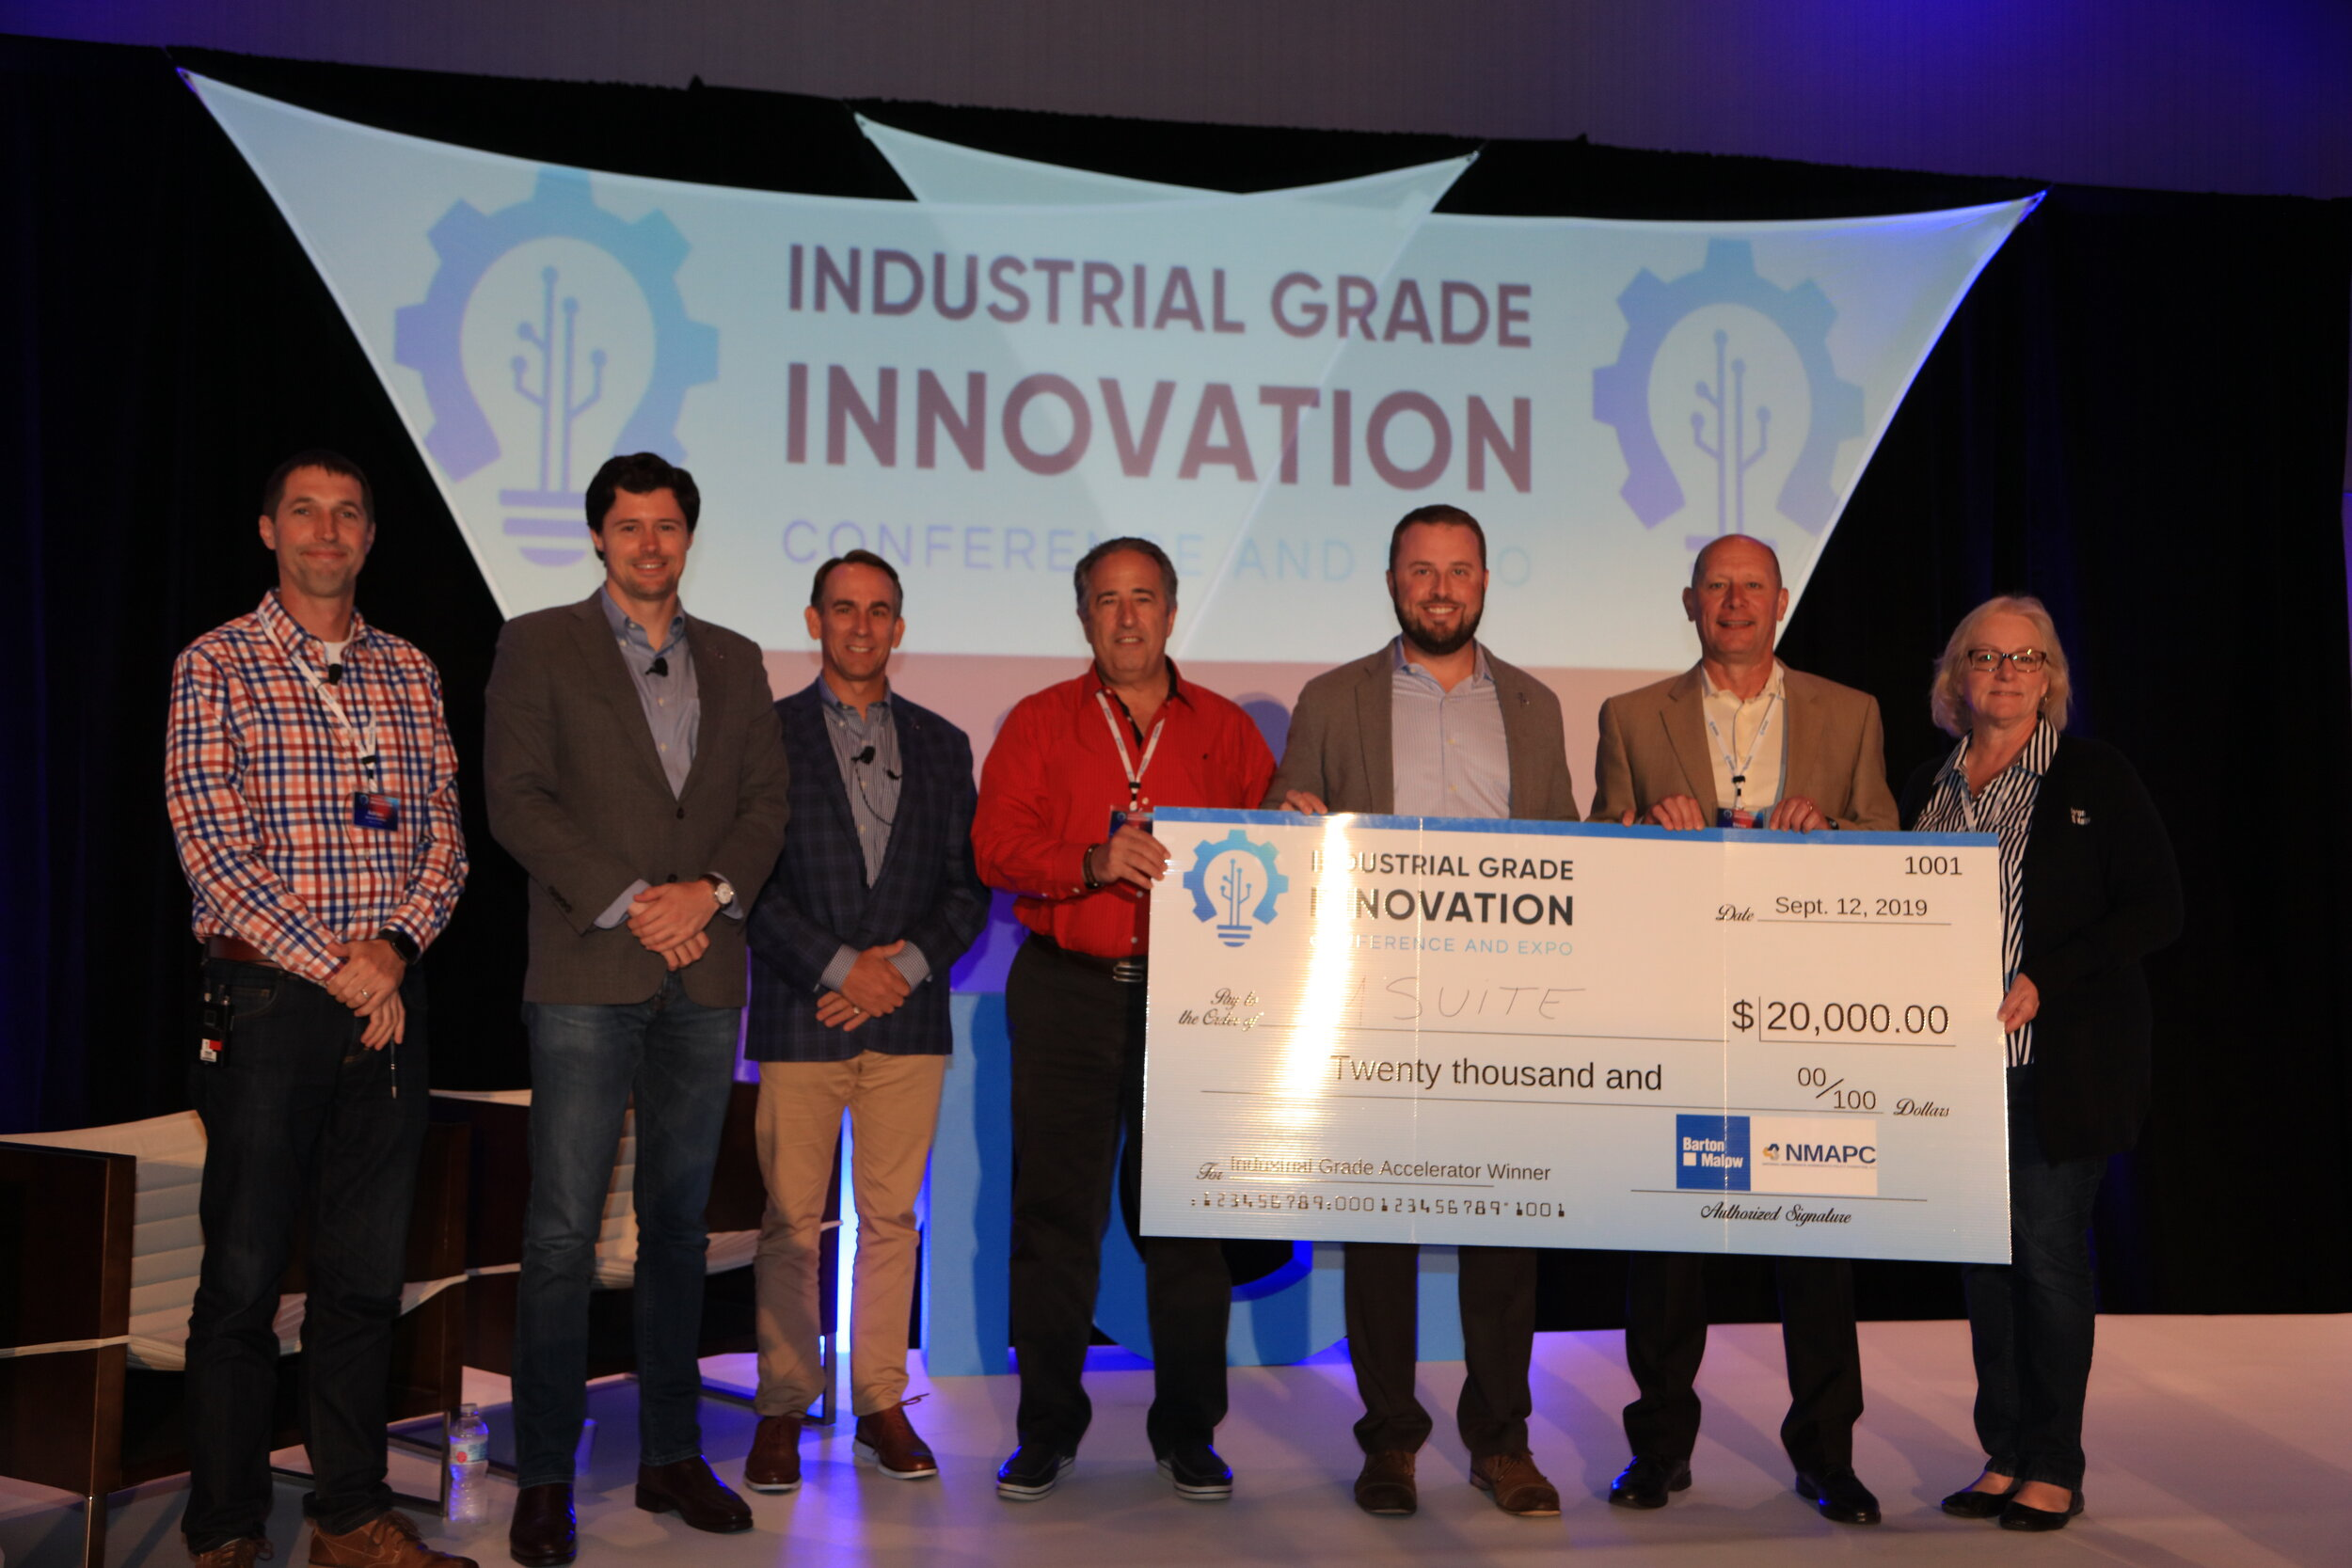 Britton Langdon (third from right), President of MSuite, accepts the winner's check.